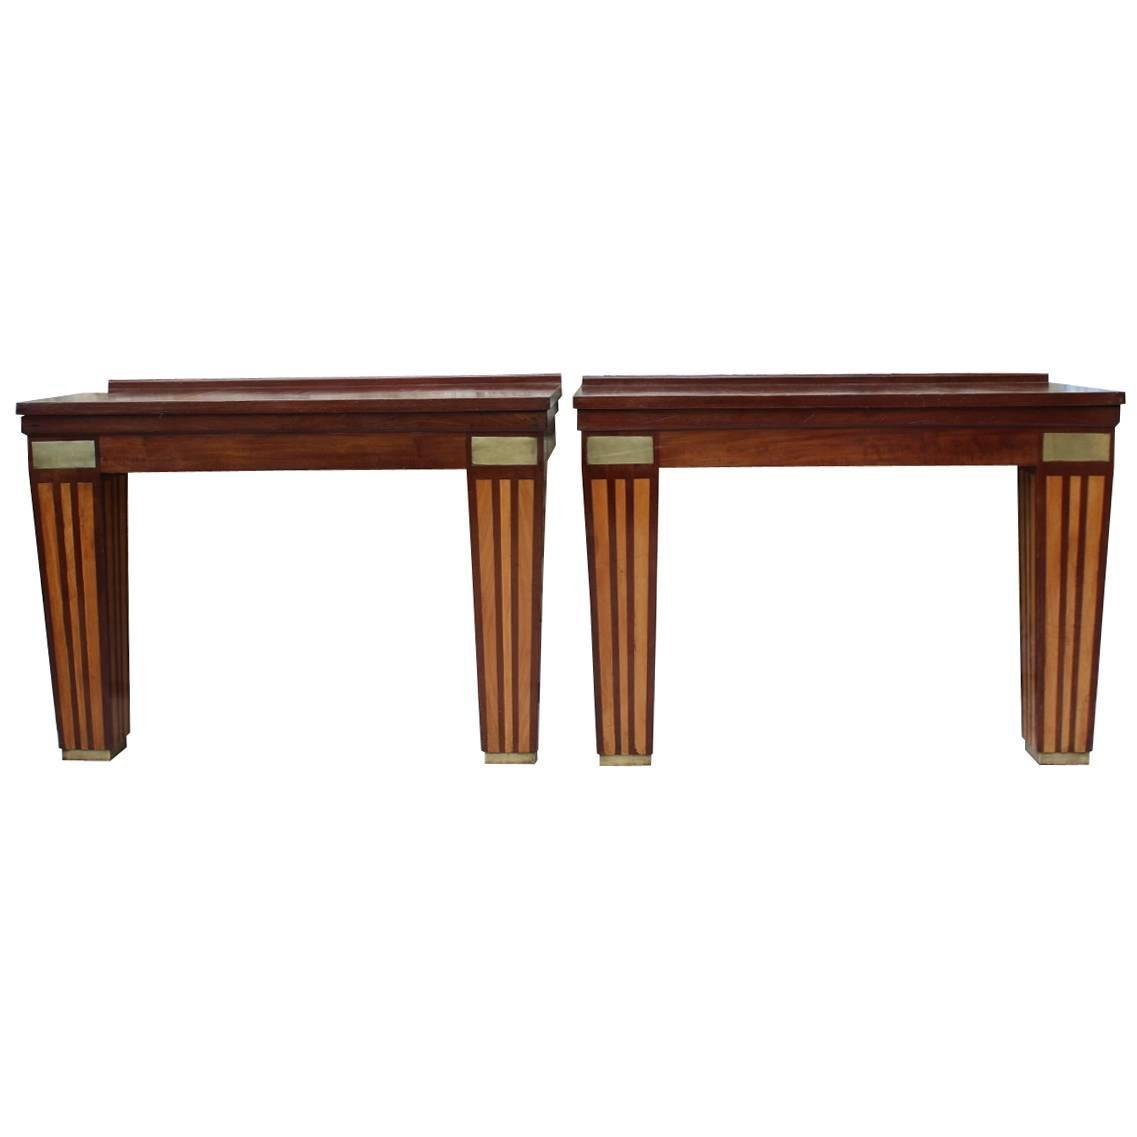 french mahogany console tables circa 1950s for sale at